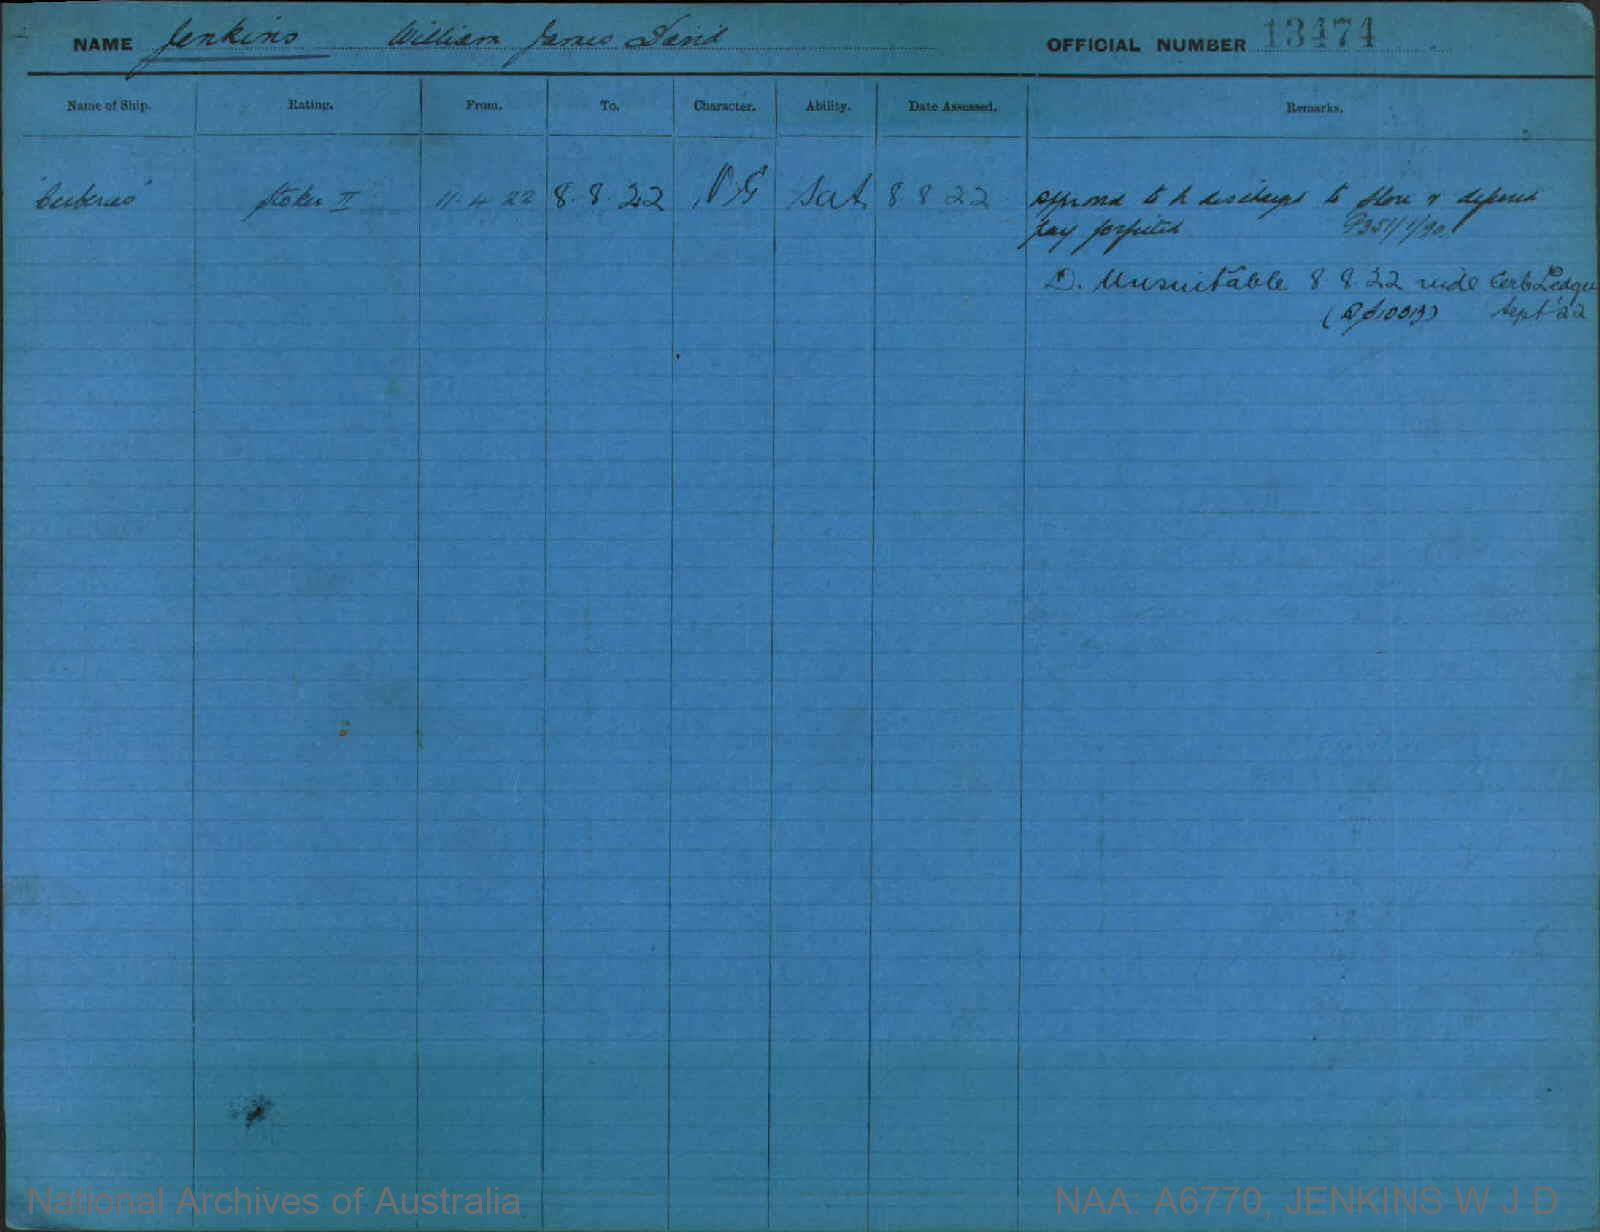 JENKINS WILLIAM JAMES DAVID : Service Number - 13474 : Date of birth - 07 Mar 1904 : Place of birth - GEELONG VIC : Place of enlistment - MELBOURNE : Next of Kin - JENKINS H